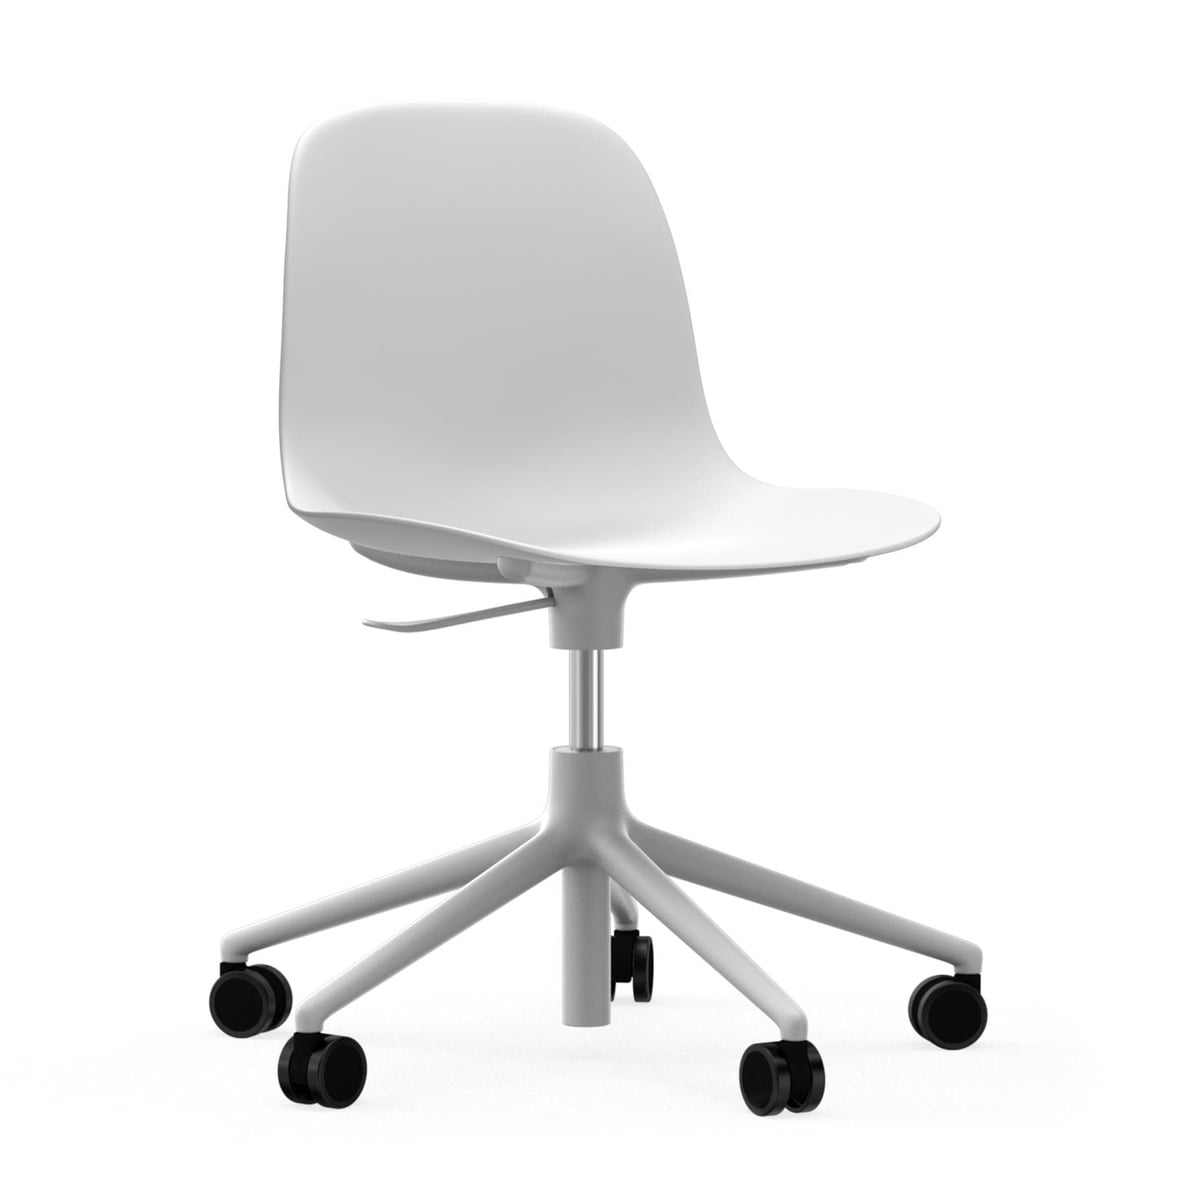 Form Swivel Office Chair By Normann Copenhagen In White / White Aluminium